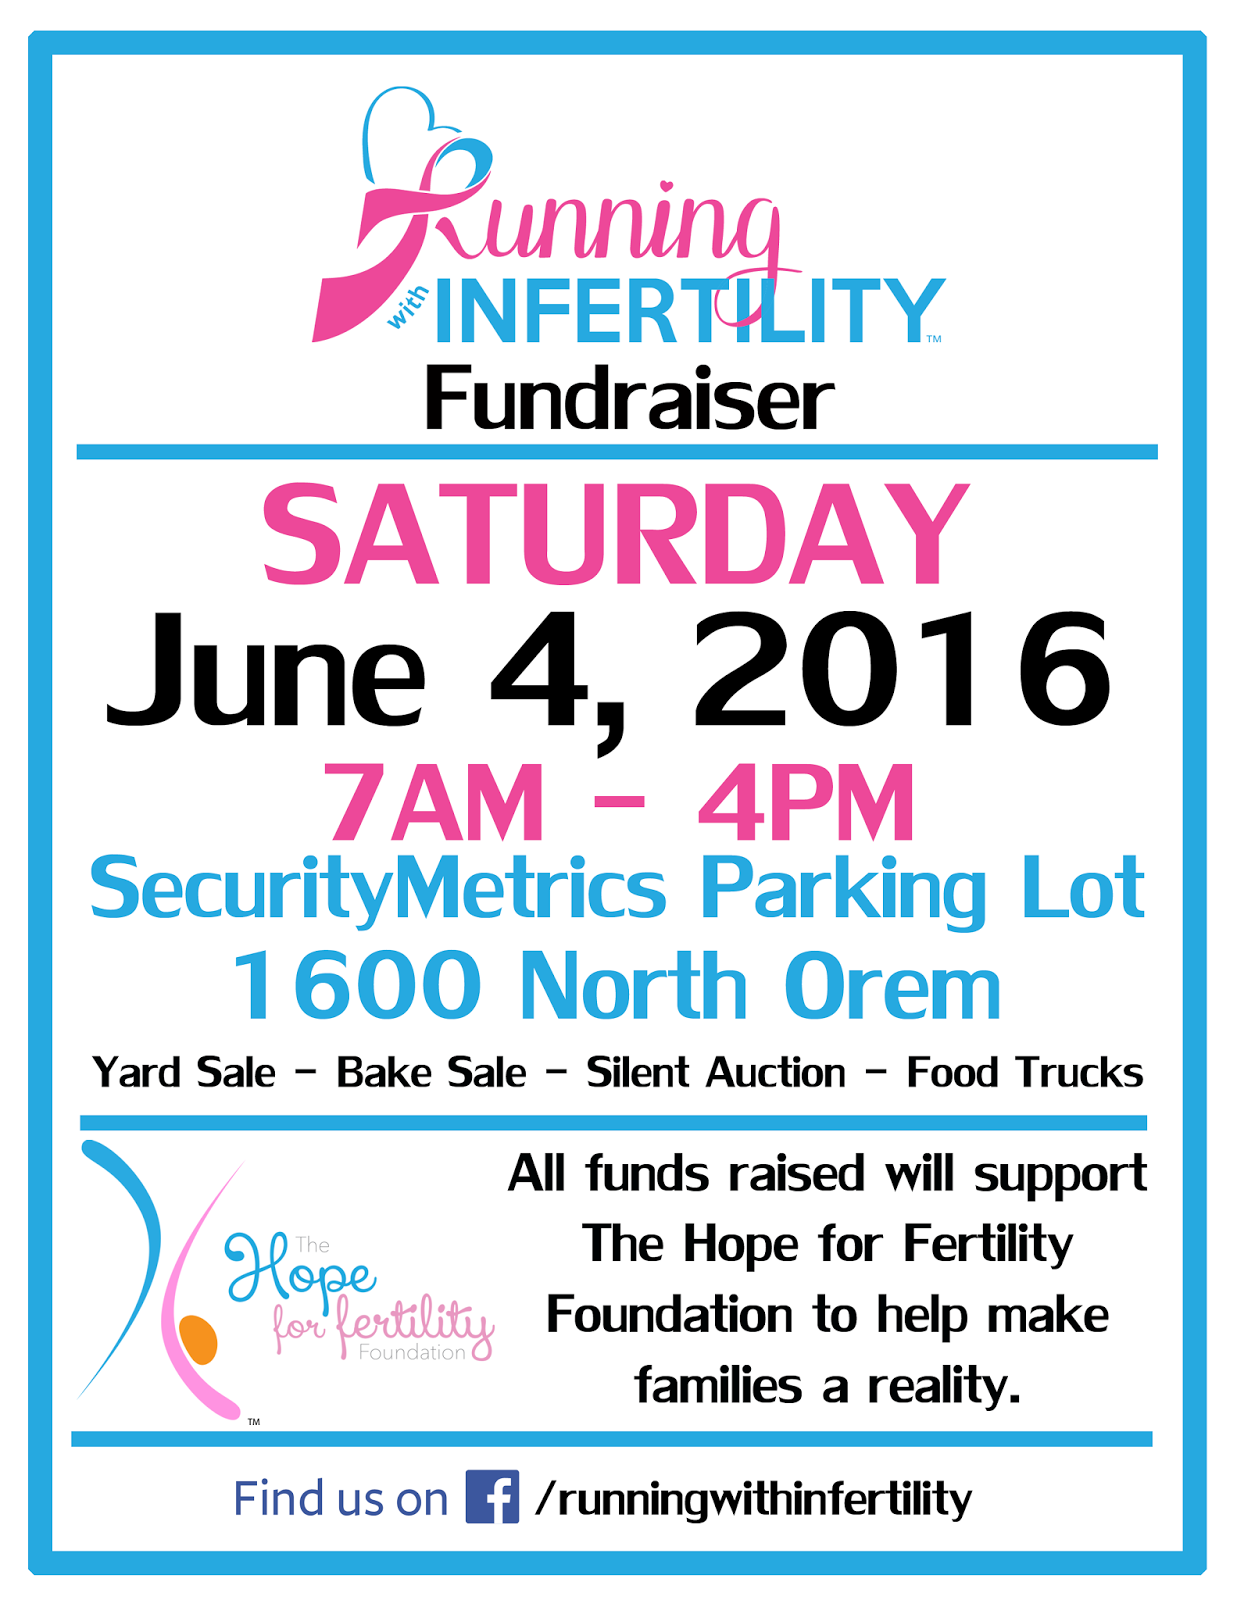 yard sale, bake sale and character meet and greet for our fertility fundraiser